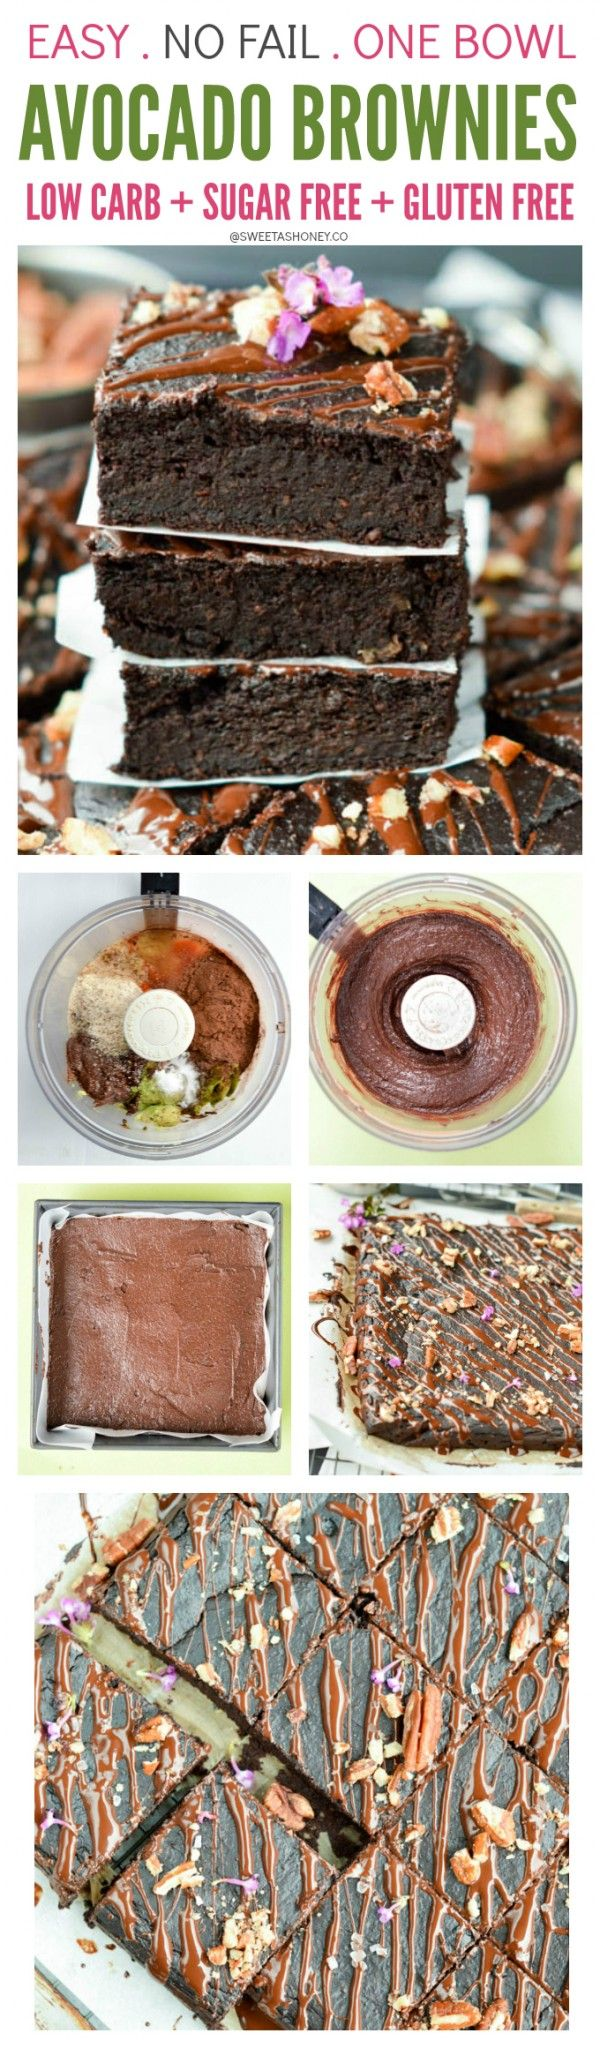 Carb free dessert recipes easy